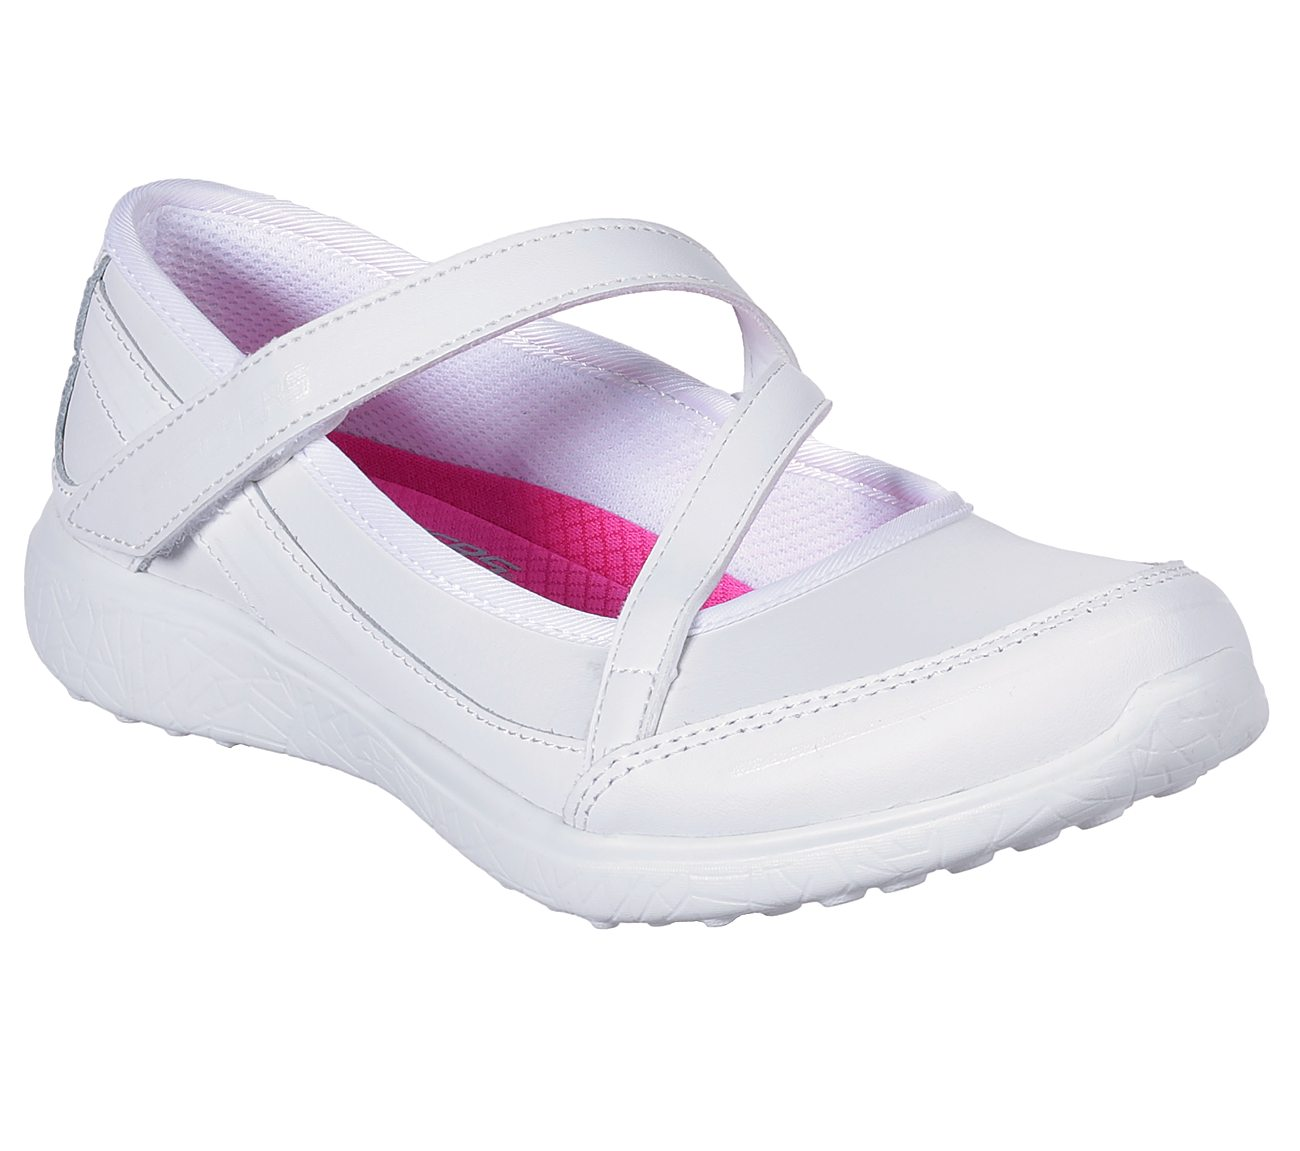 a7caee8670d36 Buy SKECHERS Microburst - Scholar Spirit SKECHERS USA Shoes only £42.00